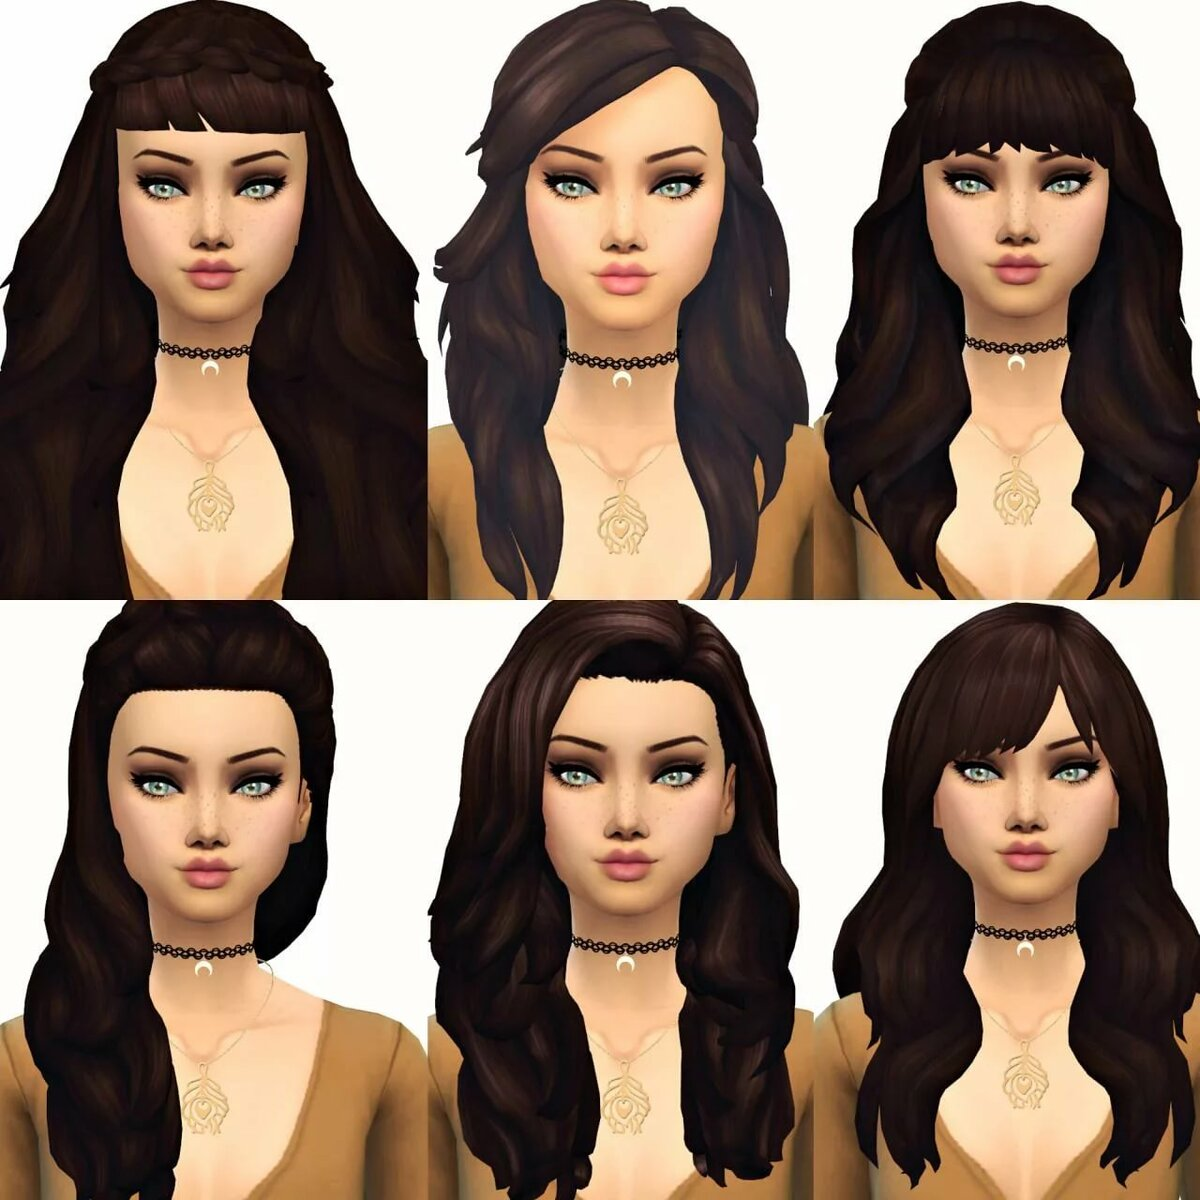 Sims superbabes #12